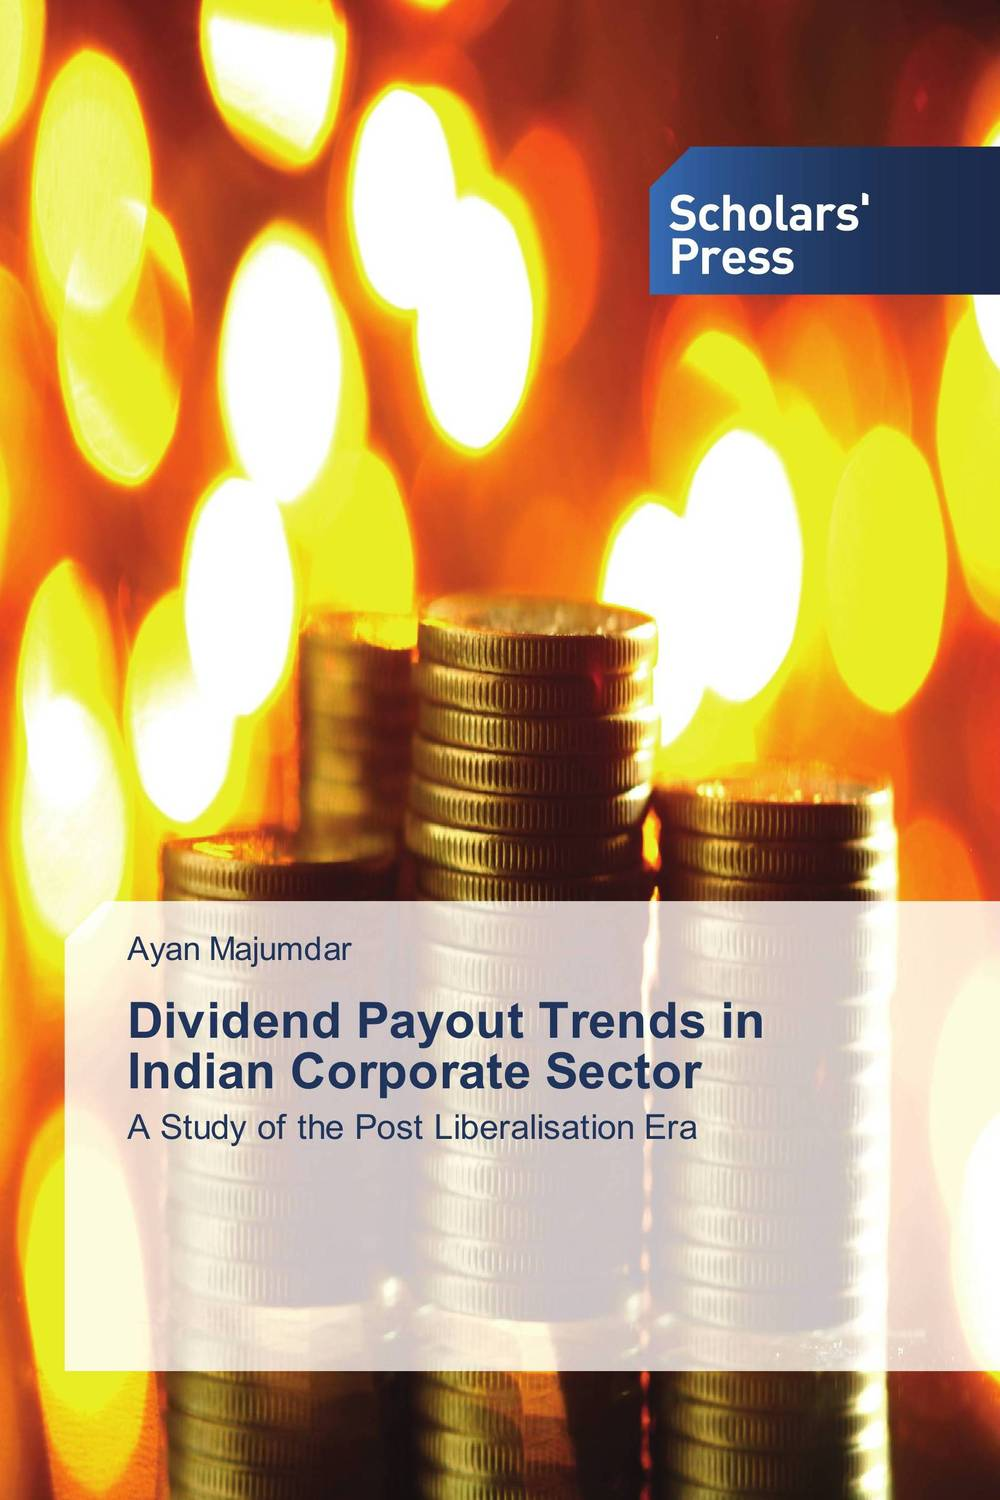 купить Dividend Payout Trends in Indian Corporate Sector недорого